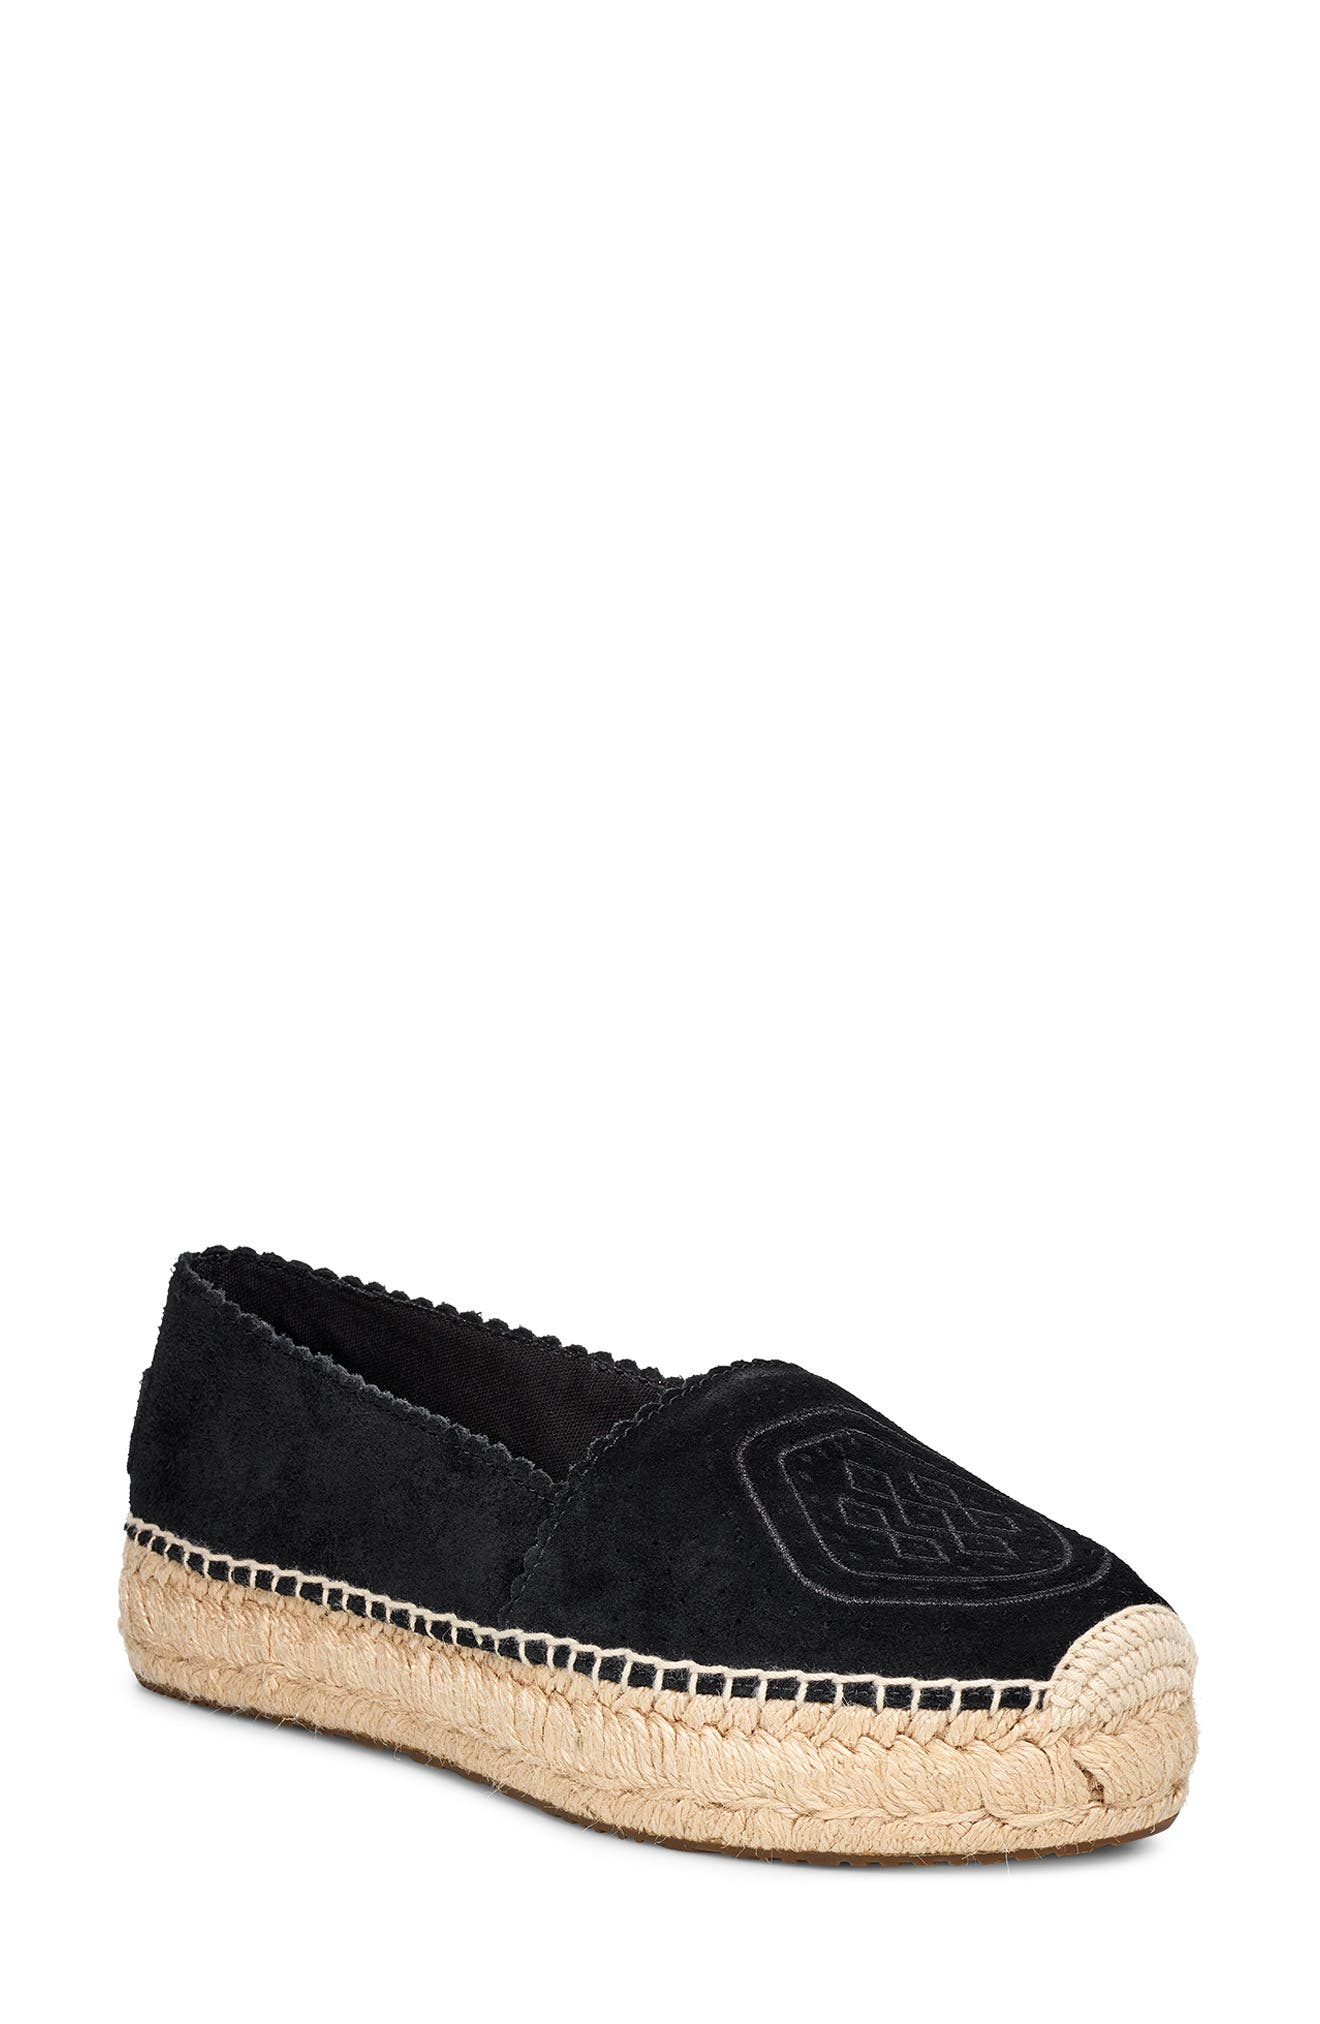 UGG<SUP>®</SUP> Heidi Perforated Espadrille, Main, color, BLACK SUEDE